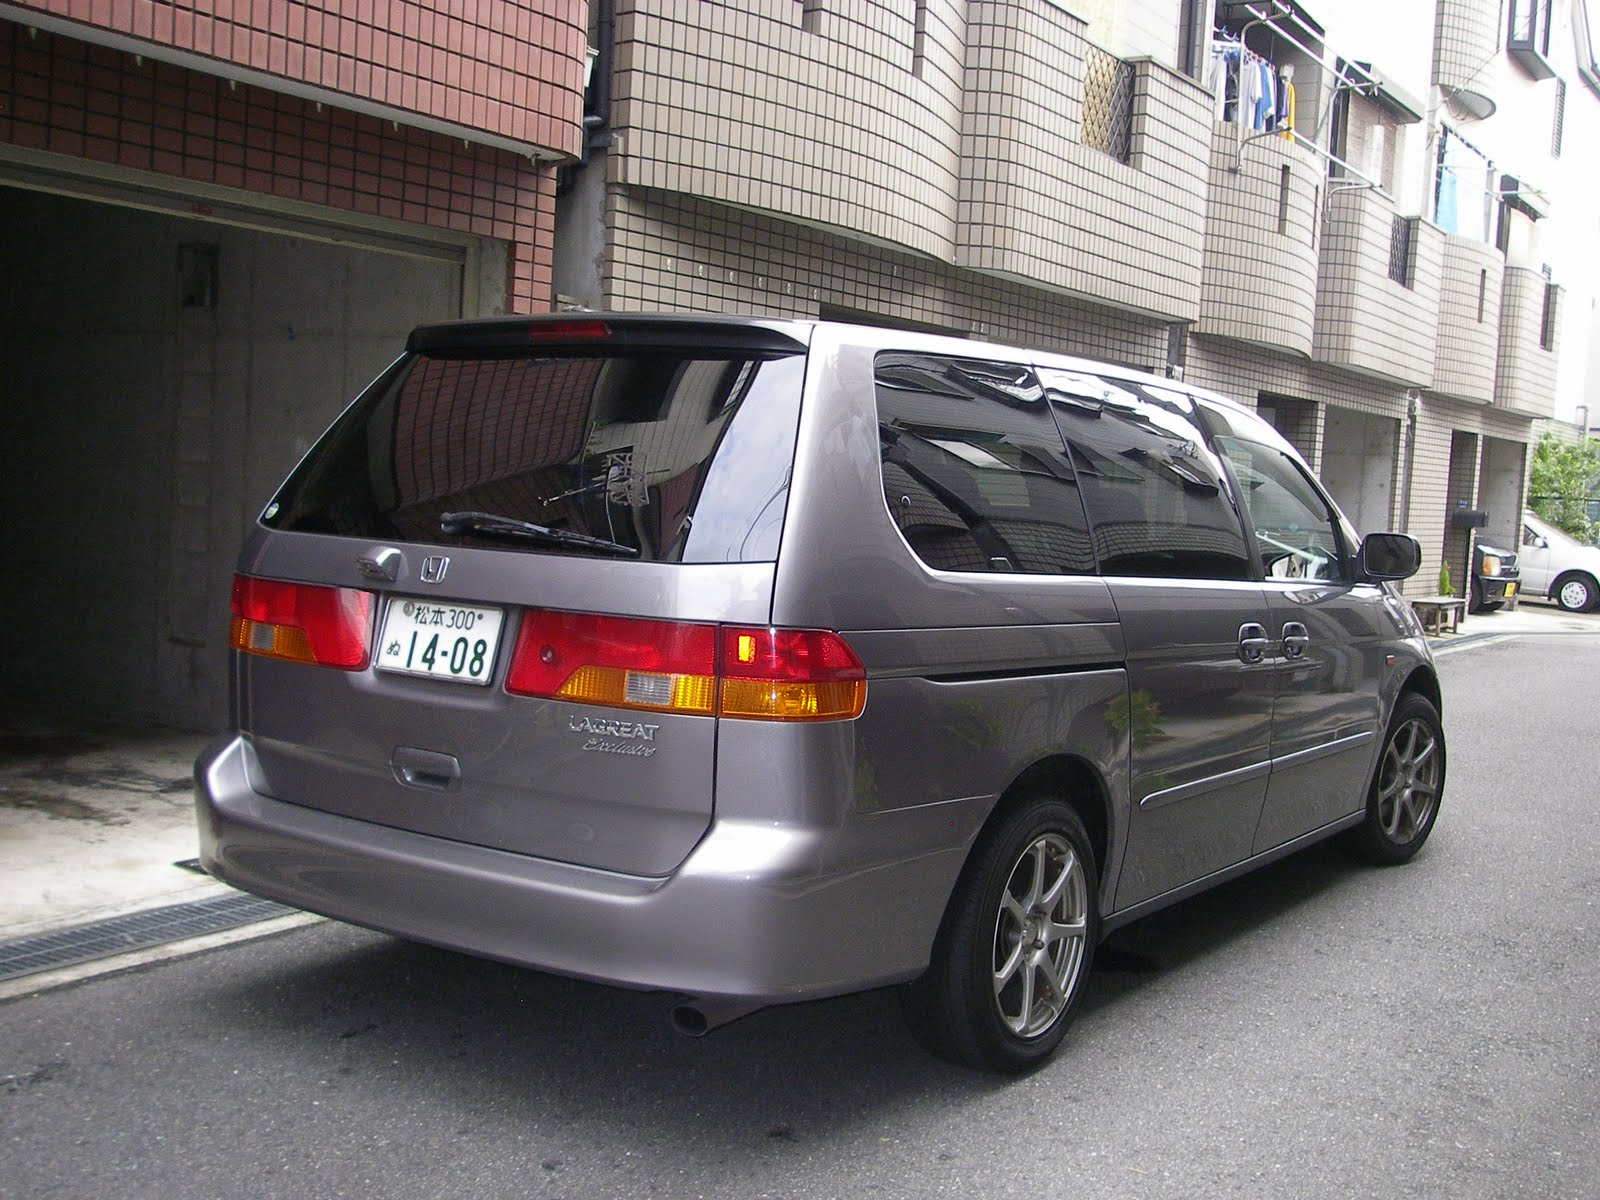 Honda Lagreat   pictures, information and specs - Auto-Database.com